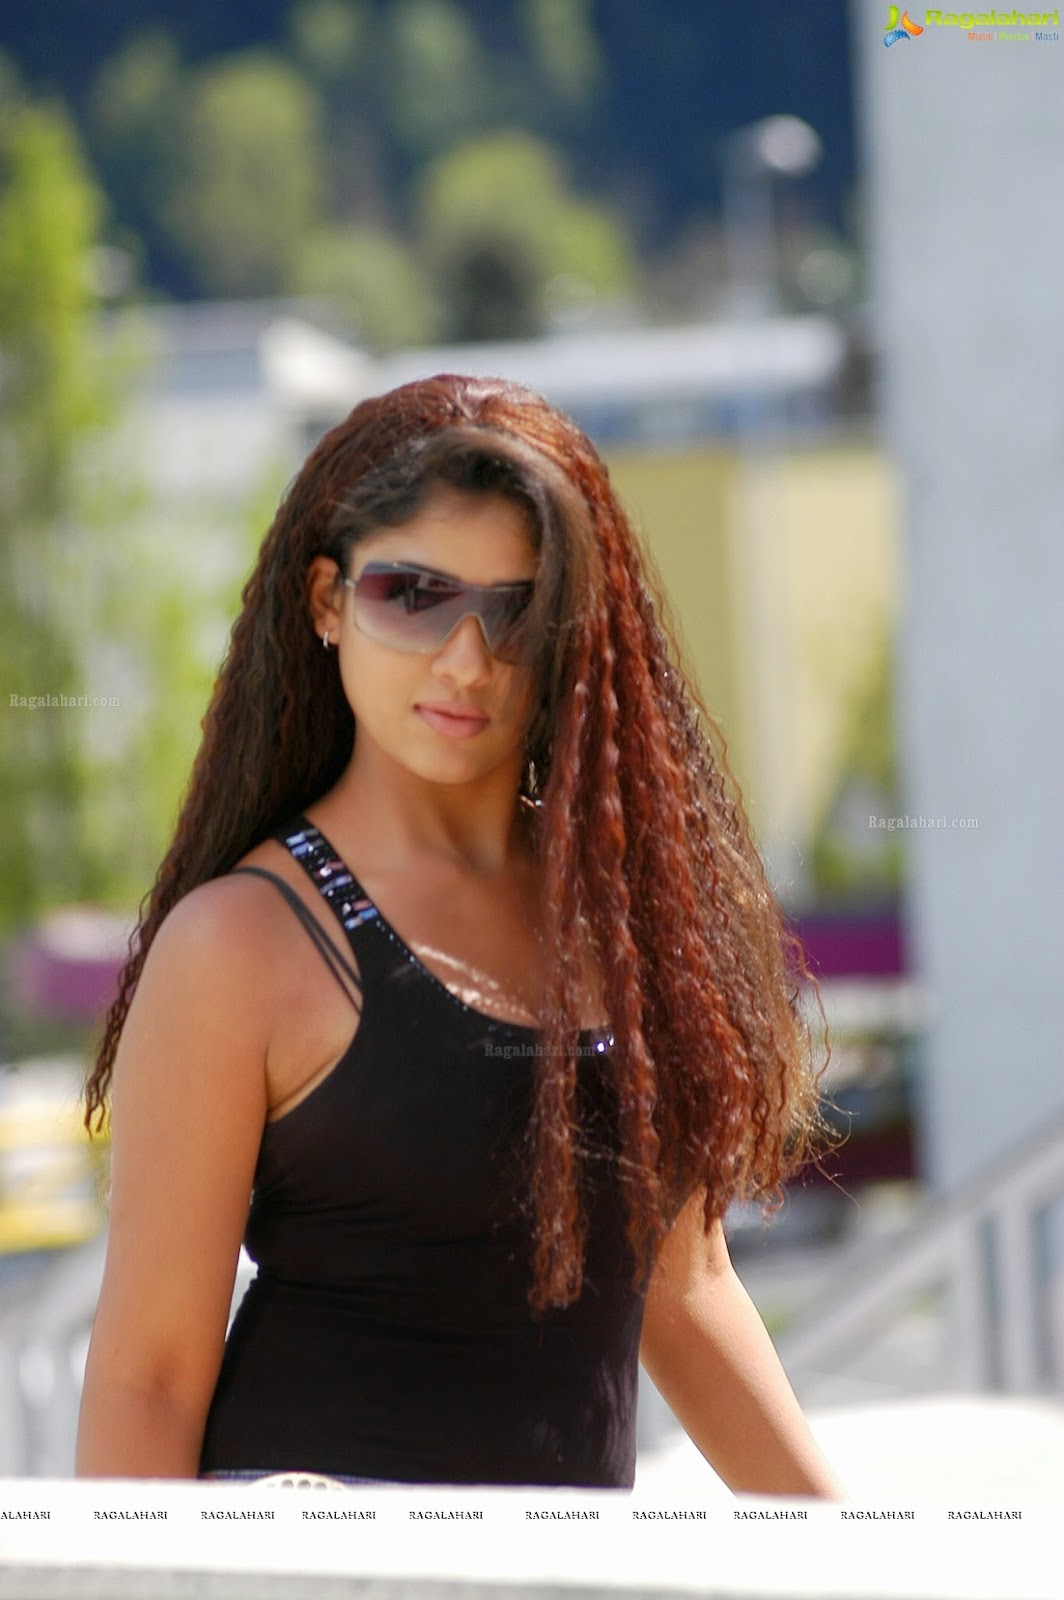 Nayanthara Hot In Black Bra Hd Images - Glamex-7885